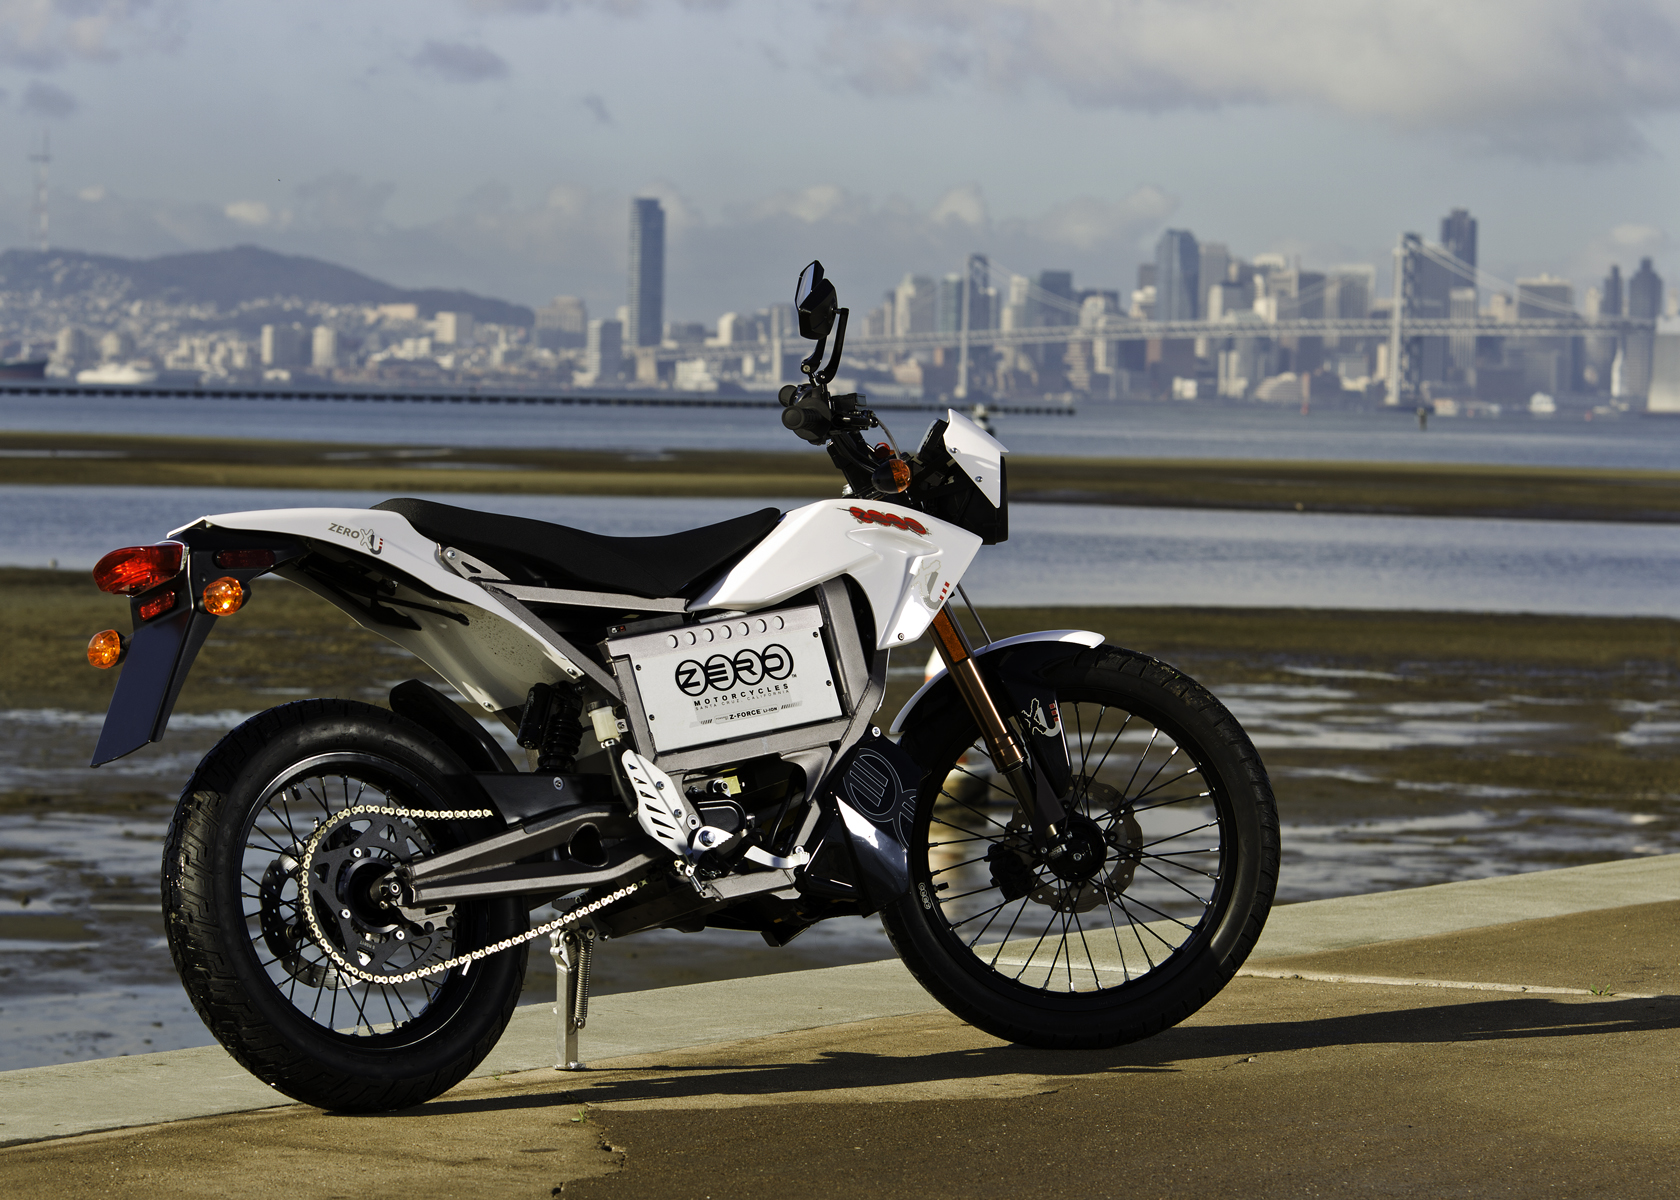 '.2011 Zero XU Electric Motorcycle: Profile, San Francisco Bay Skyline.'